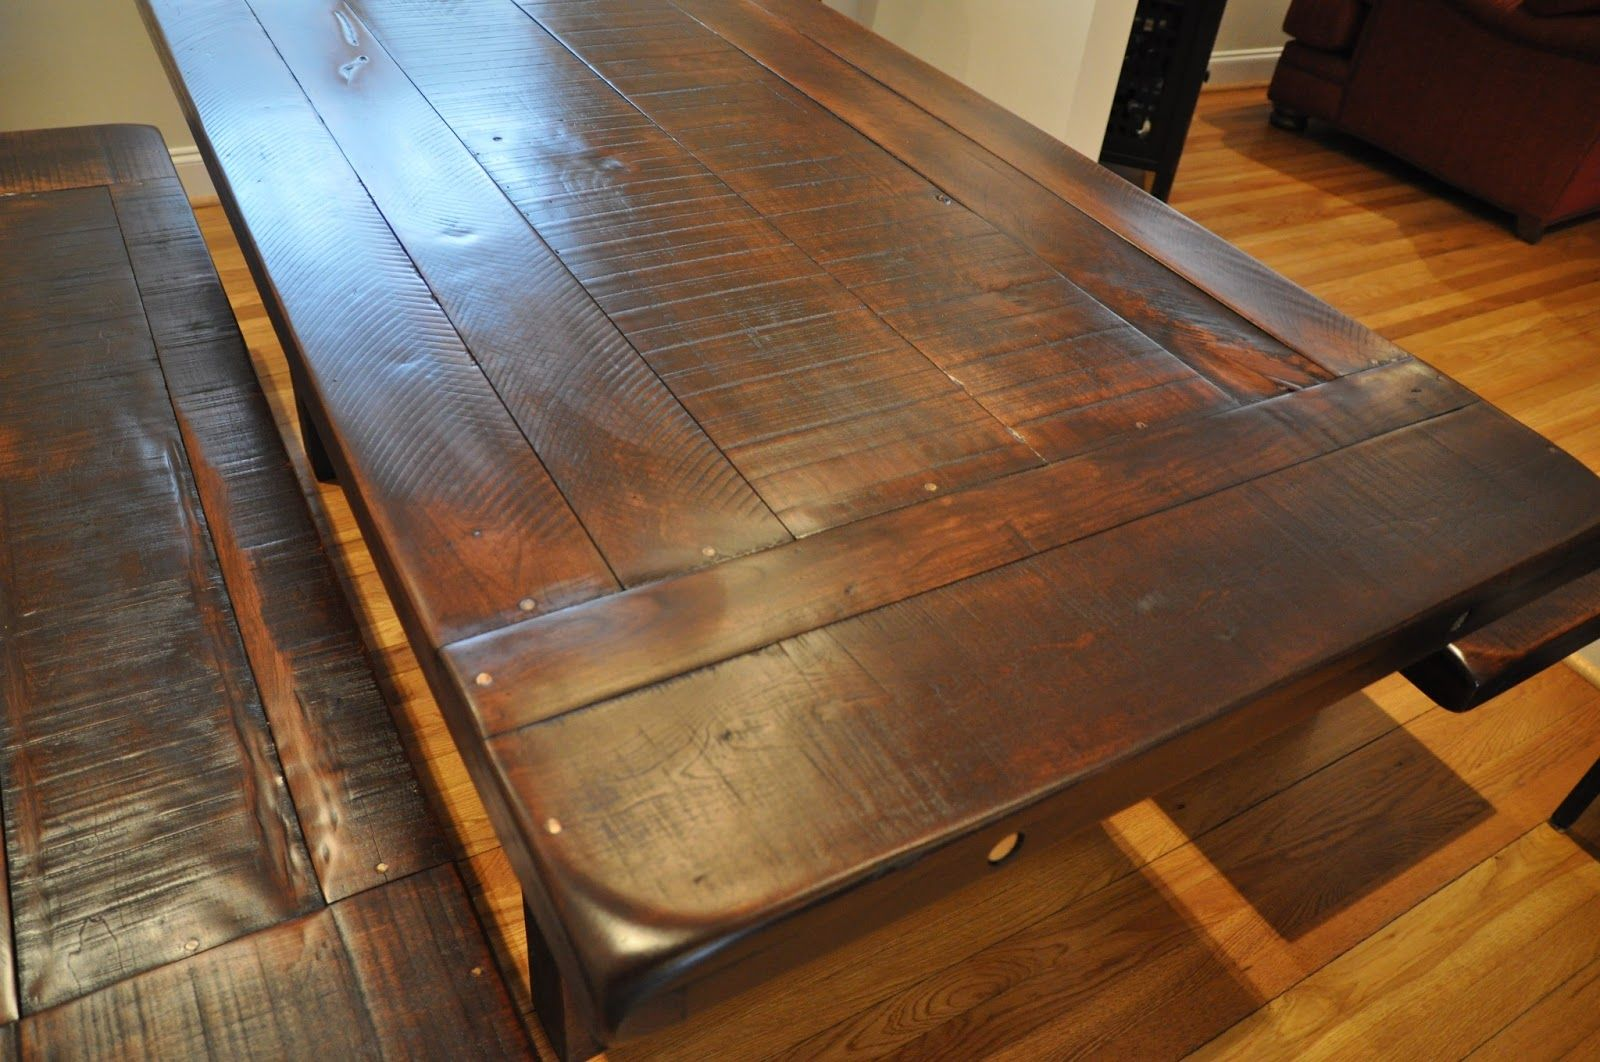 Rustic Dining Room Tables   Projects to Try   Pinterest   Dining ...